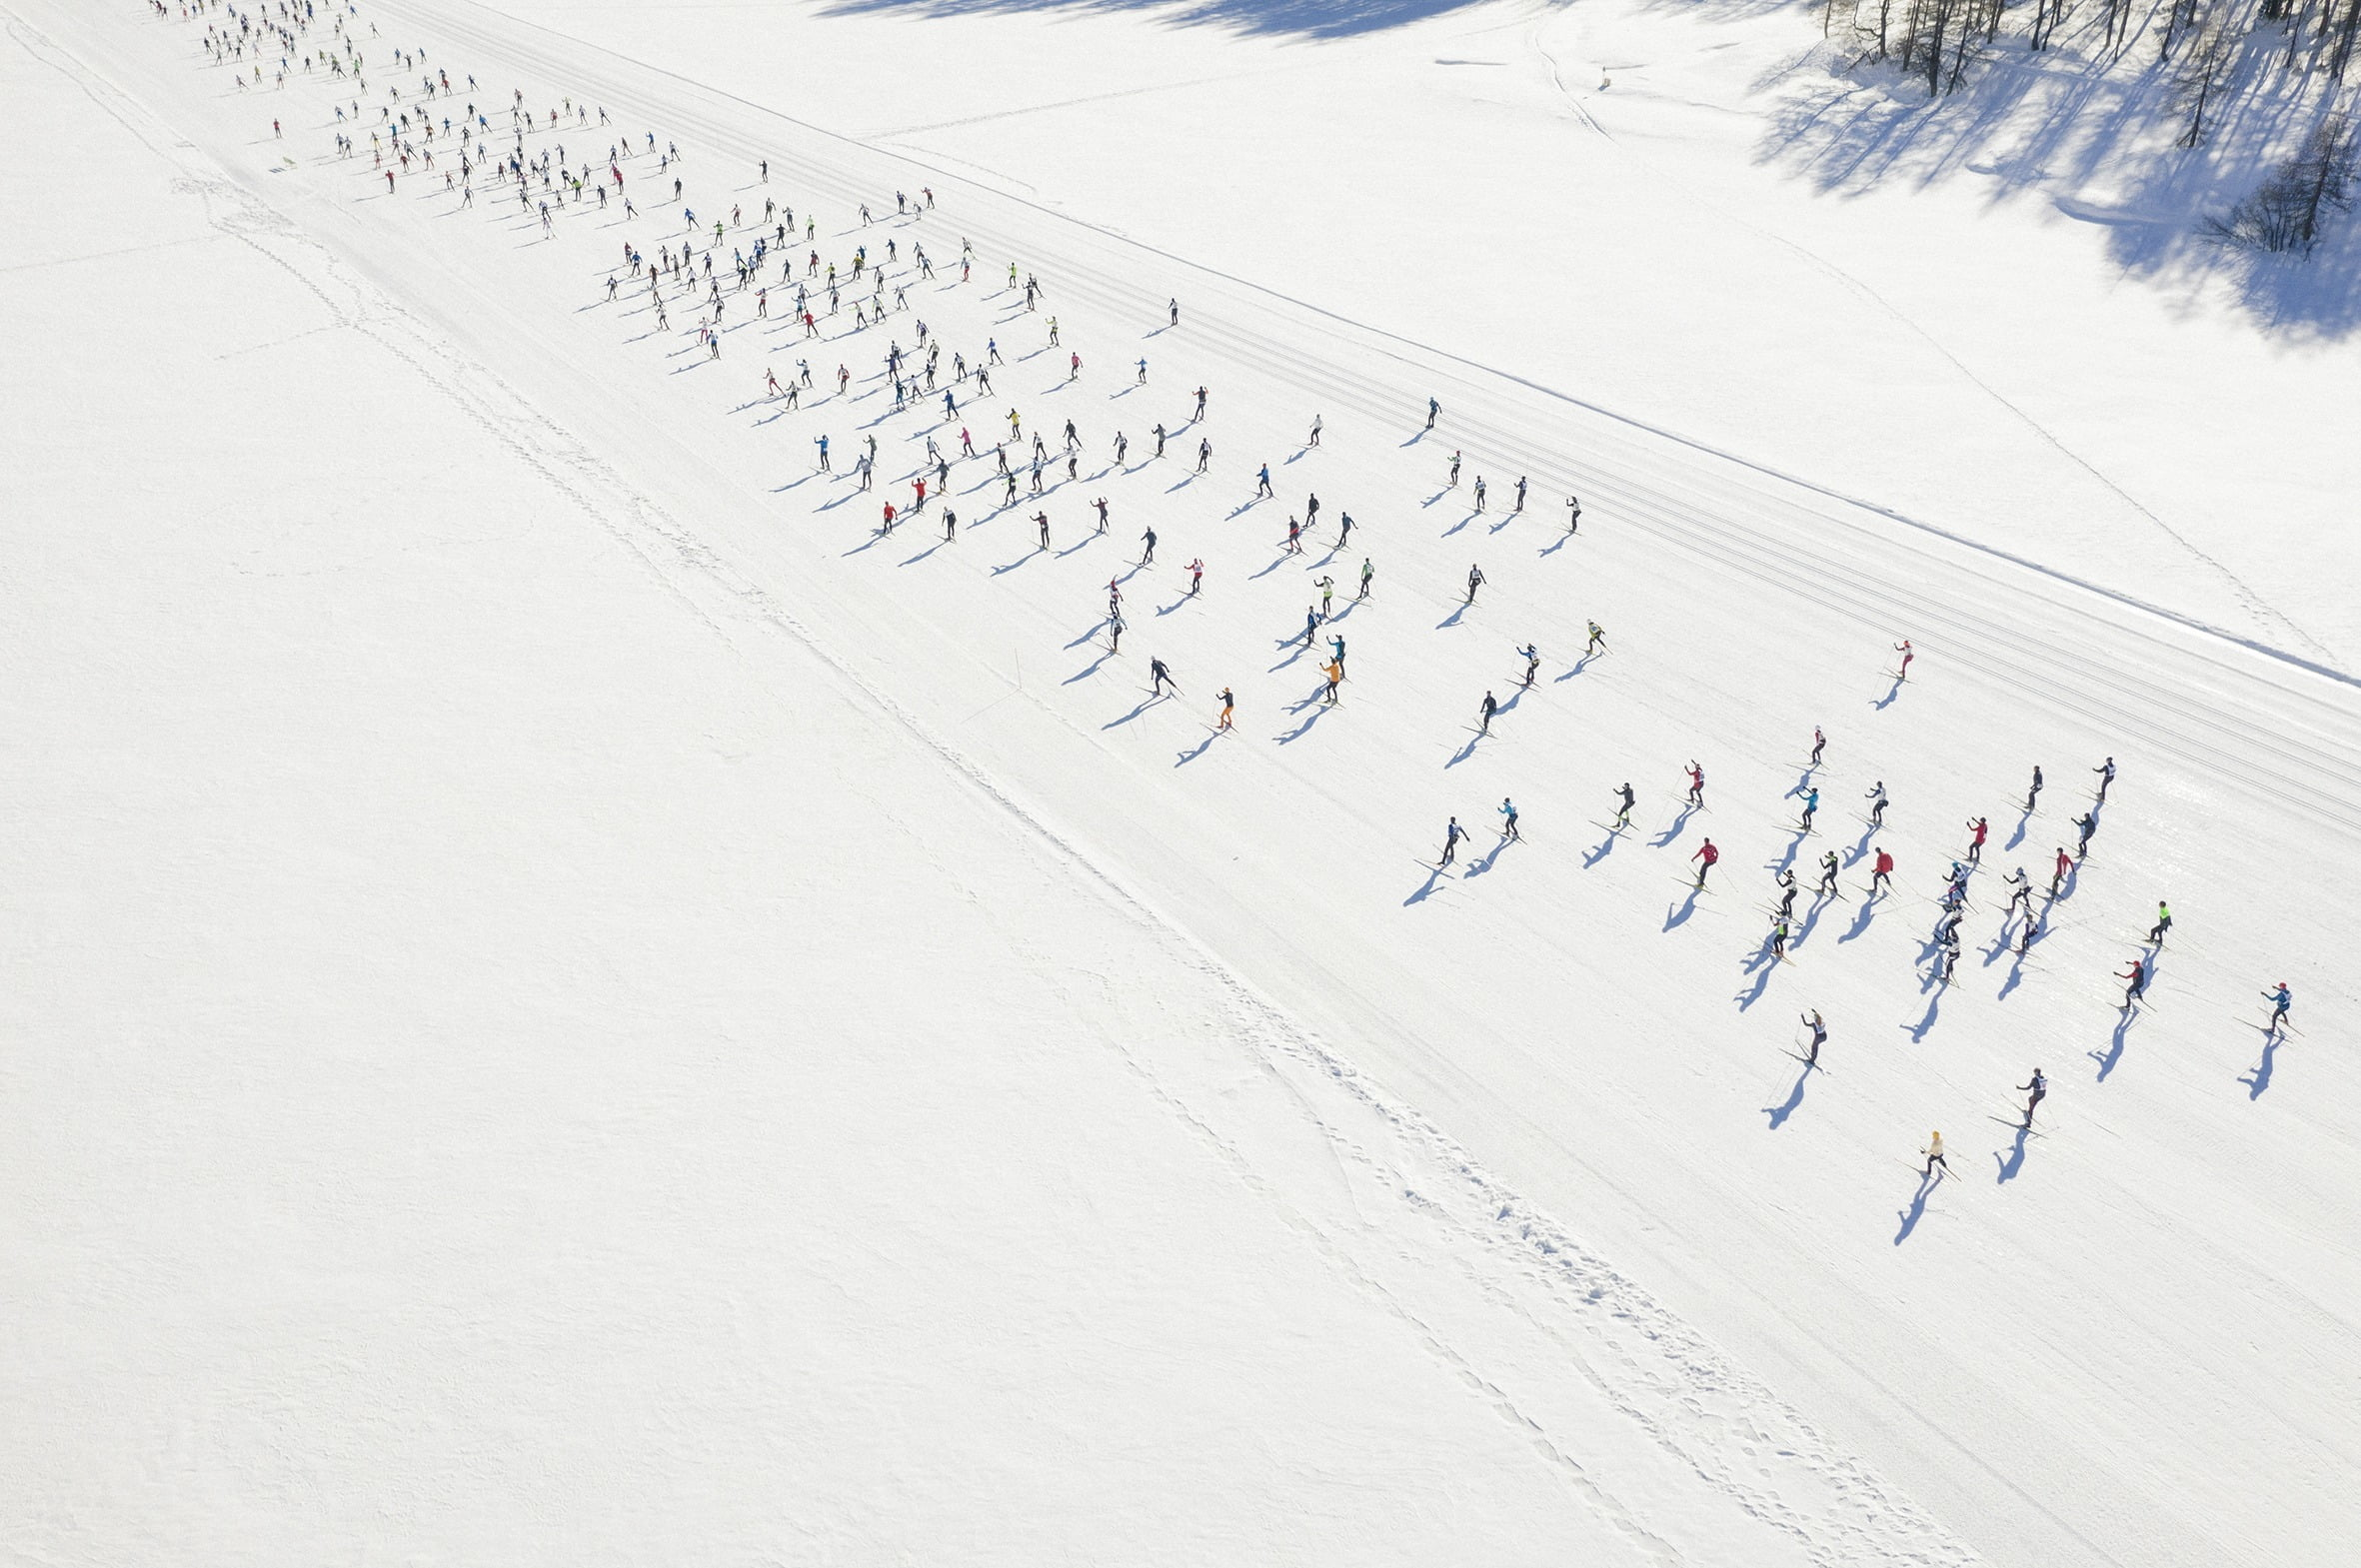 Maloja-Zernez cross-country ski race